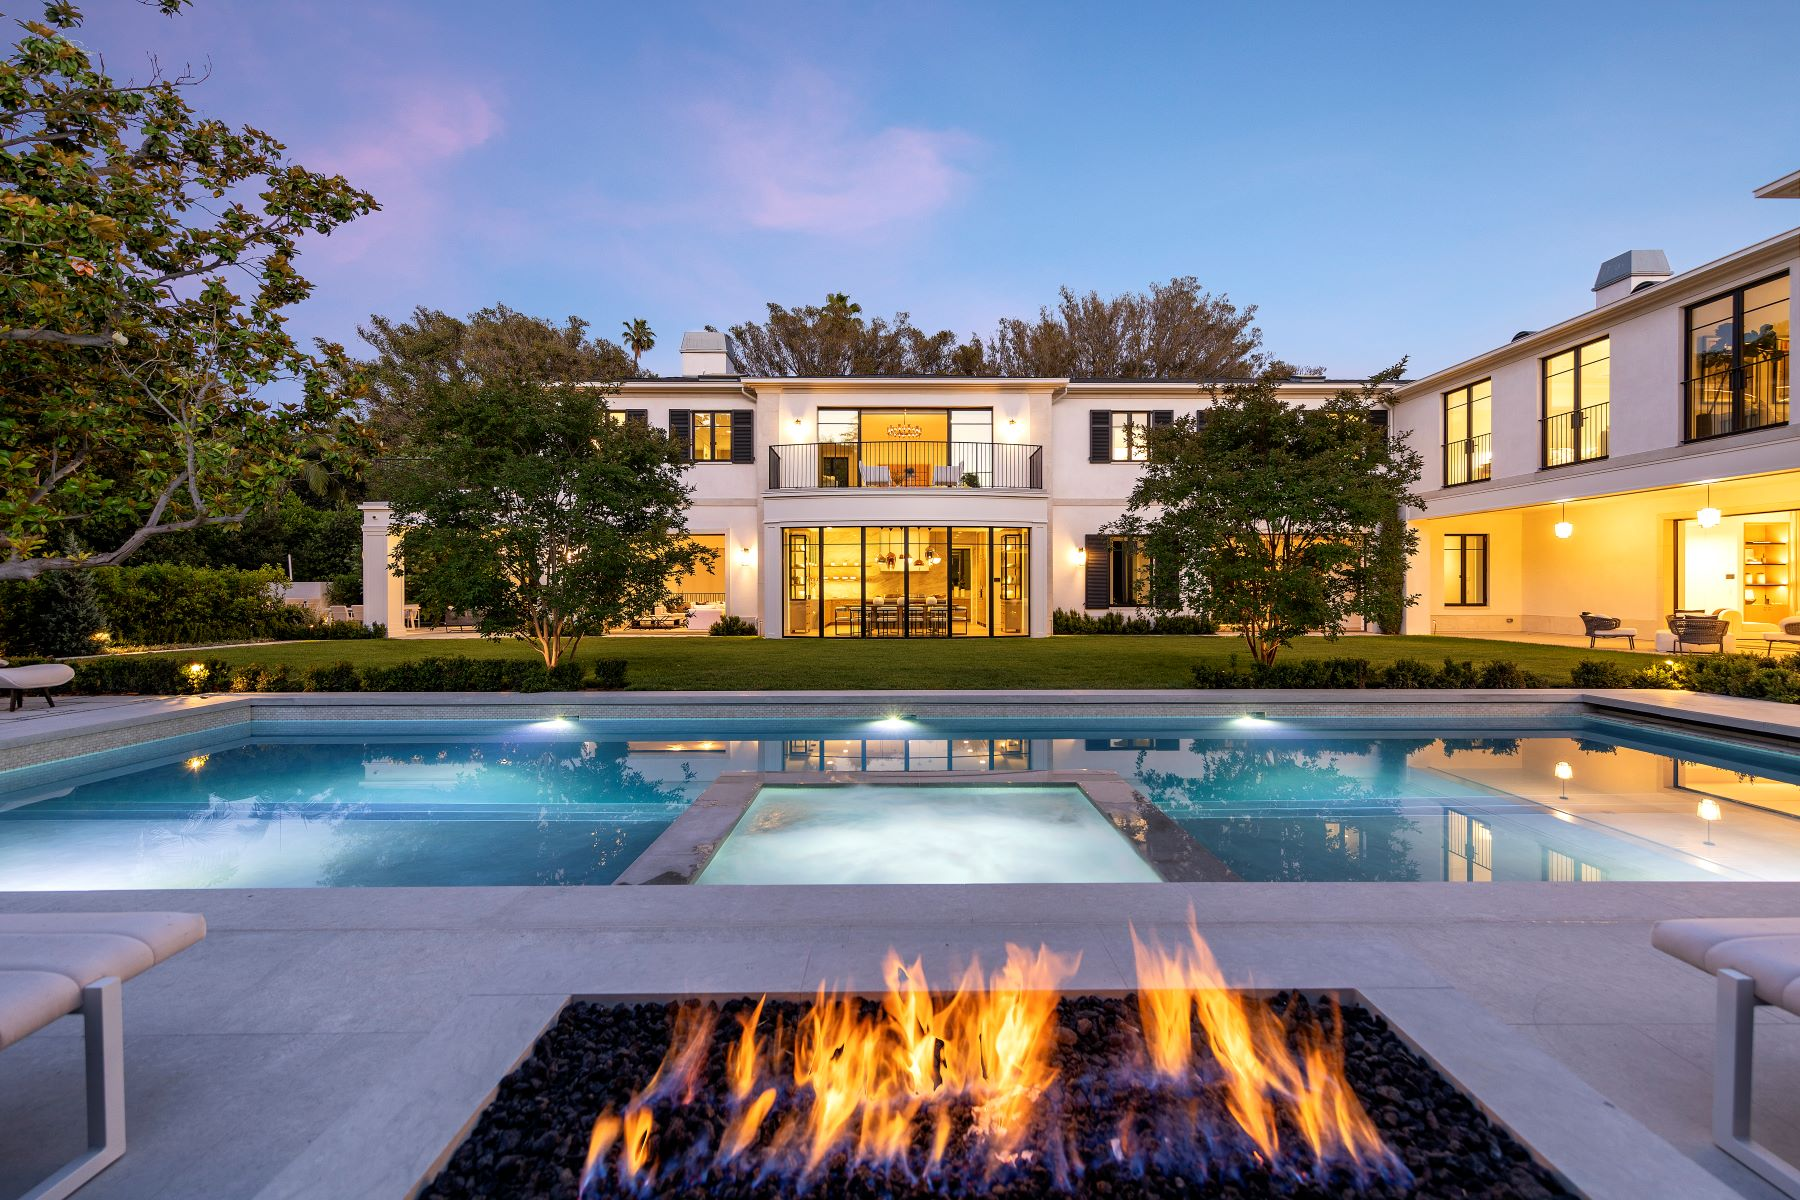 Single Family Homes for Sale at Brand New Beverly Hills Estate 1000 Laurel Way Beverly Hills, California 90210 United States